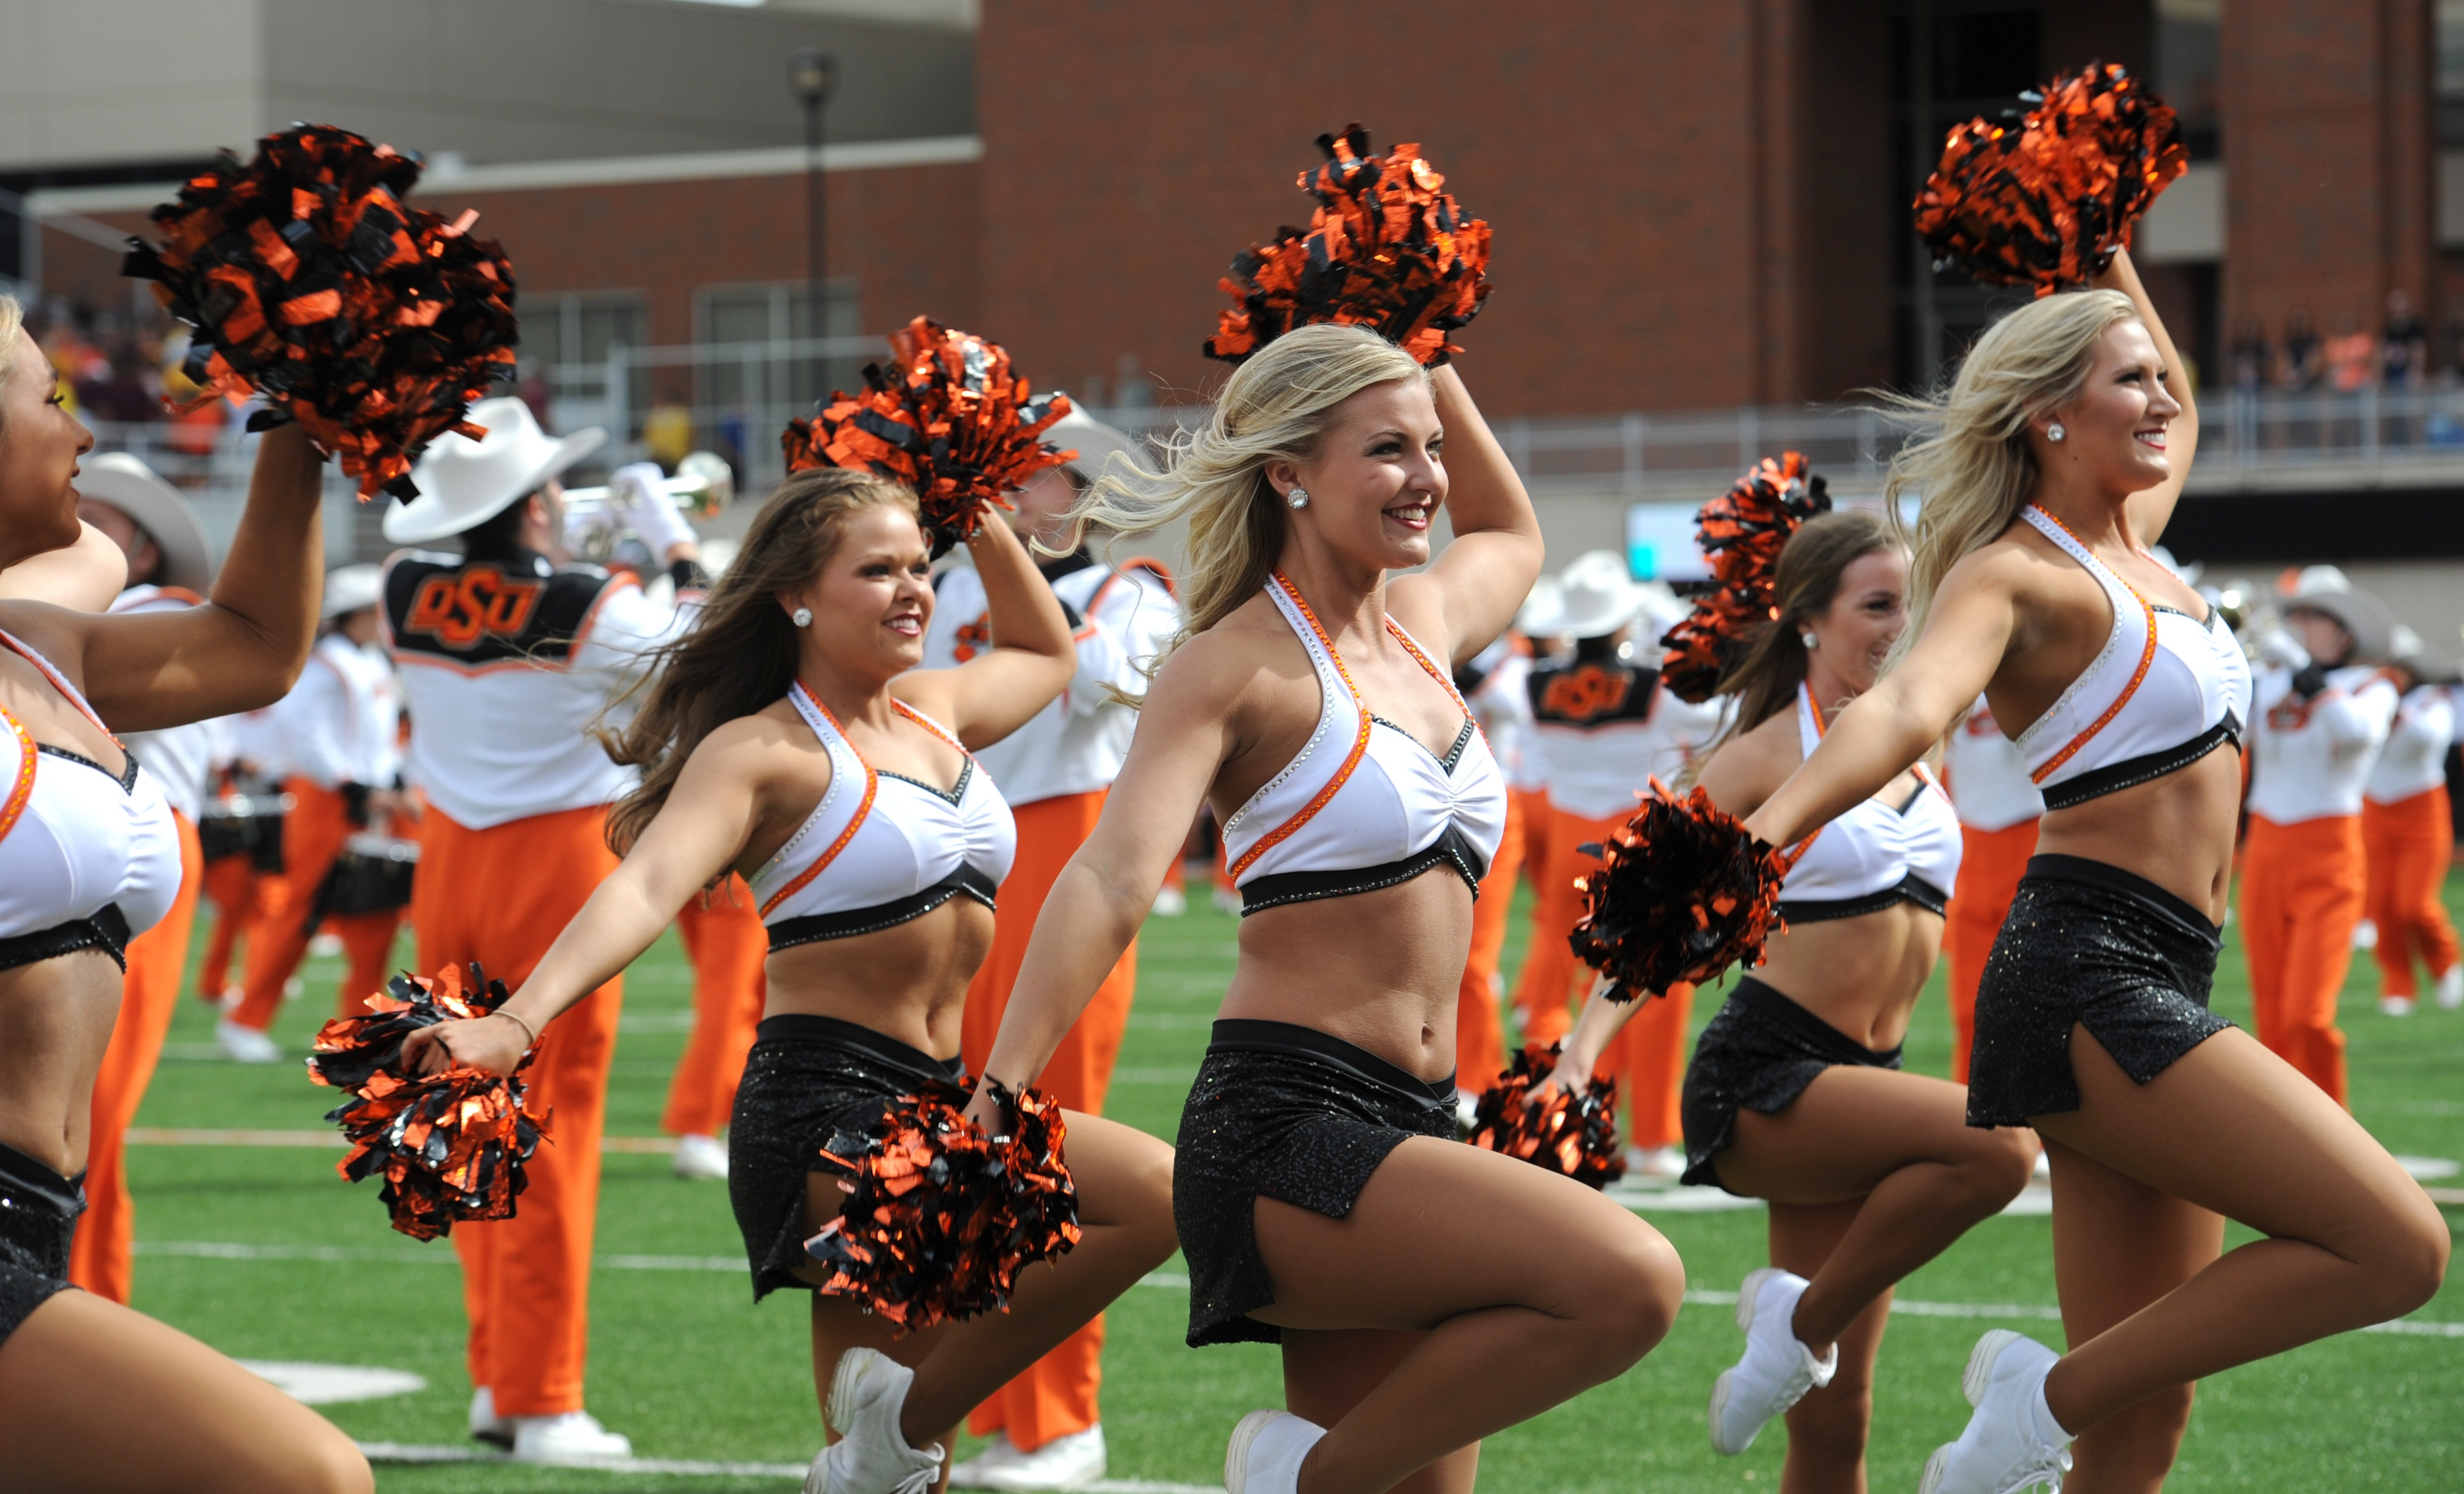 OSU Pom Squad in custom cheer uniforms